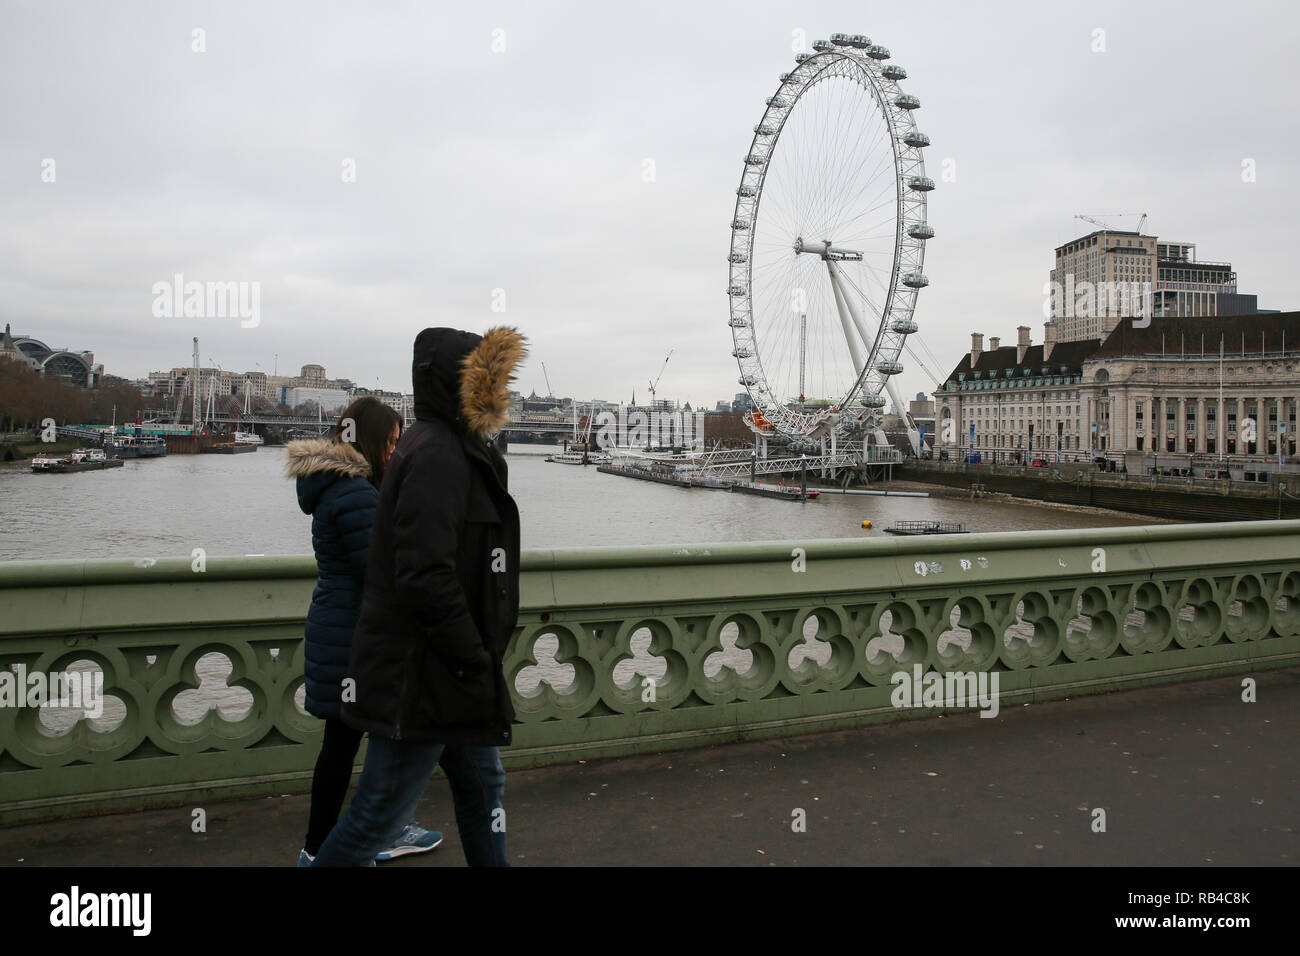 Coca Cola London Eye. London, UK 7 Jan 2018 - Tourists on Westminster Bridge as the Coca Cola London Eye is closed for it's annual maintenance refurbishment. The popular tourist attraction is 135m/443ft high and there are 32 capsules attached to the wheel will re-open on 23rd January 2019. The London Eye is Europe's tallest cantilevered observation wheel and over 3.75 million visitors visits the London Eye annually.  Credit: Dinendra Haria/Alamy Live News Stock Photo